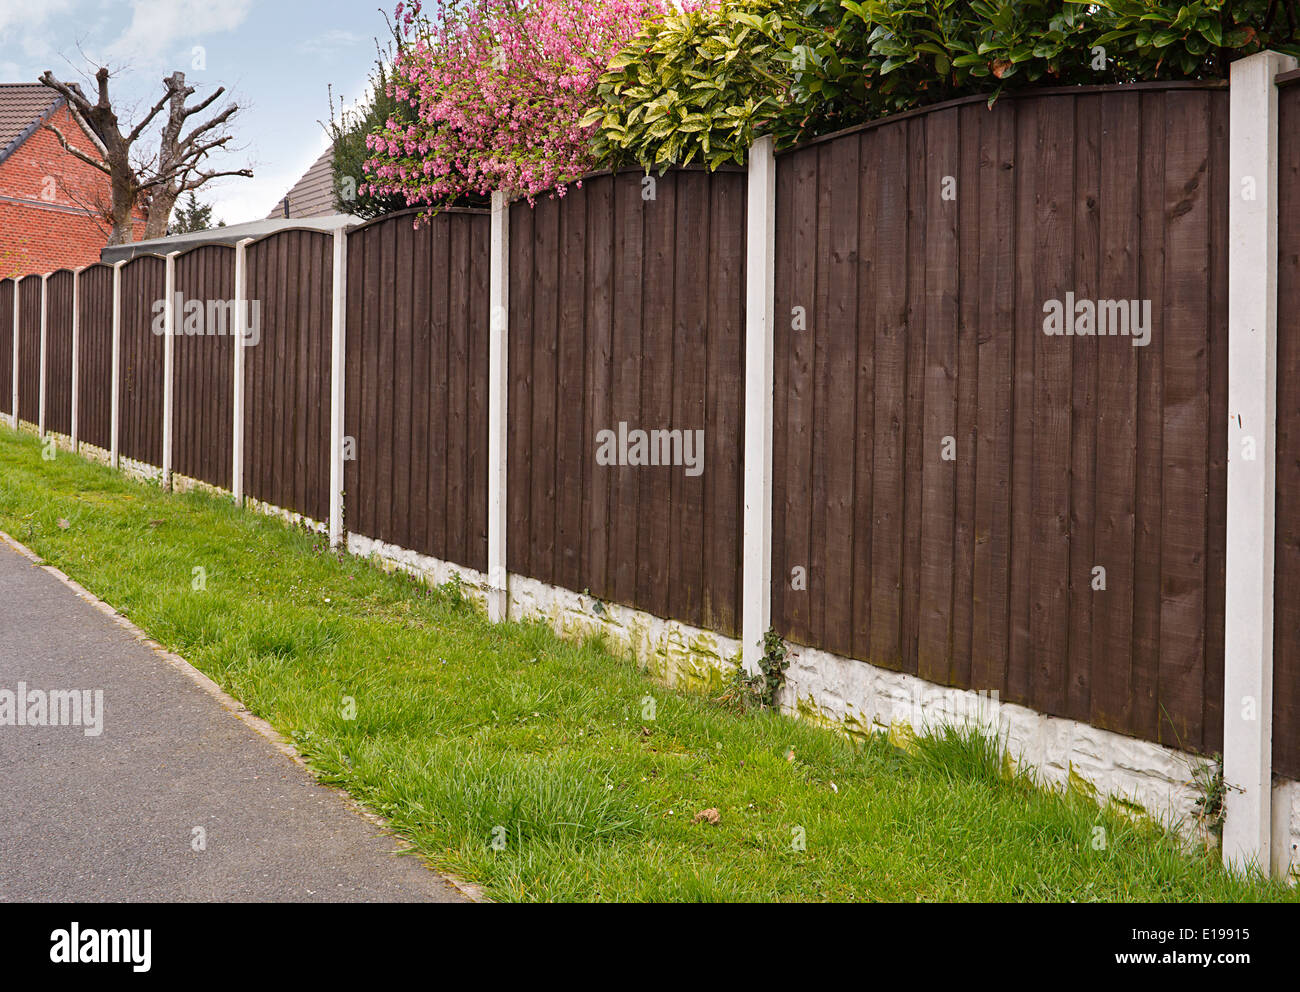 Marvelous photograph of Stock Photo close board fencing panels with concrete posts recently  with #4C6314 color and 1300x992 pixels